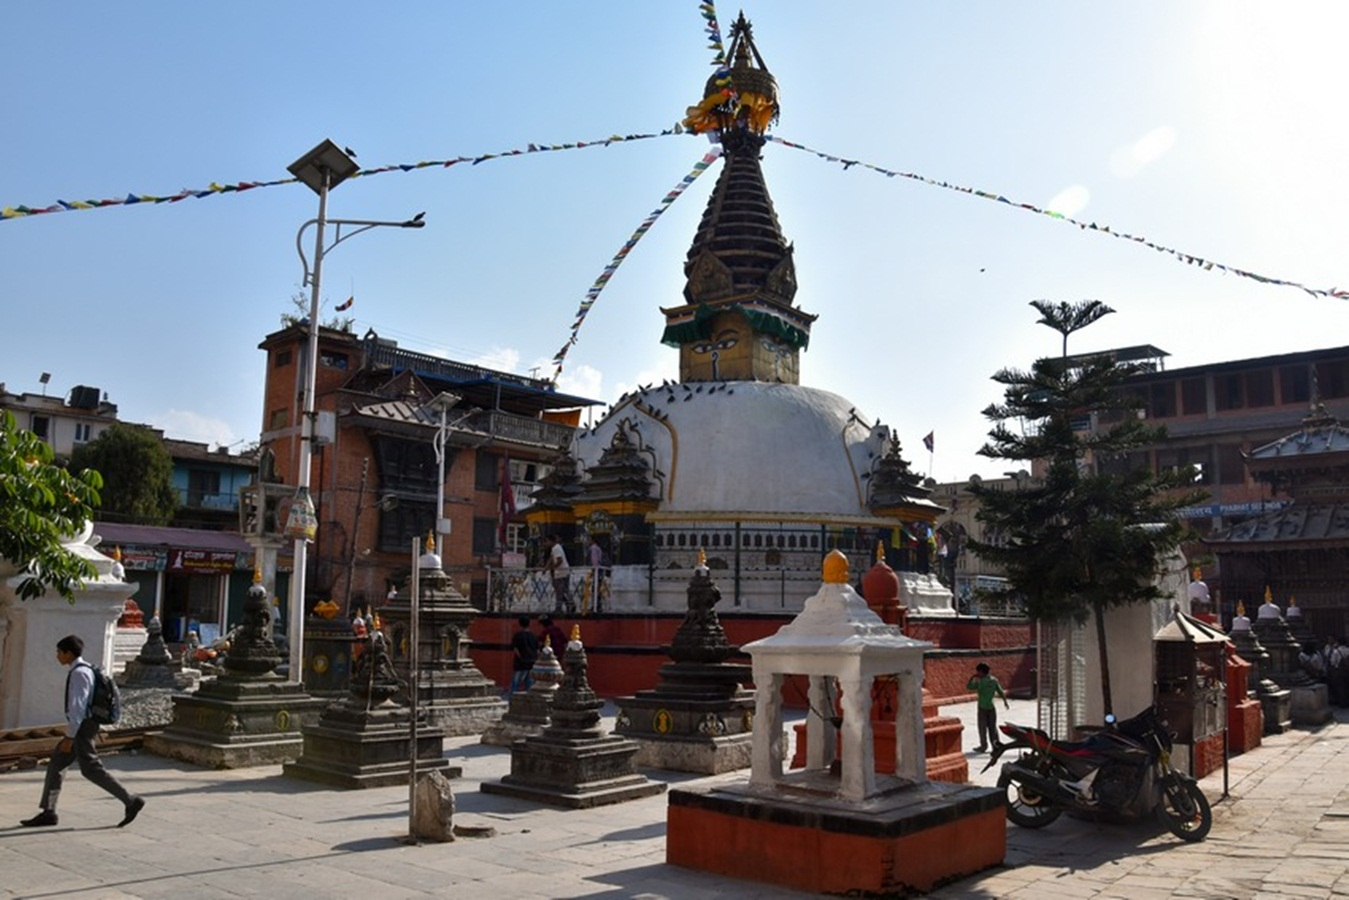 Pilgrim Tours of Nepal